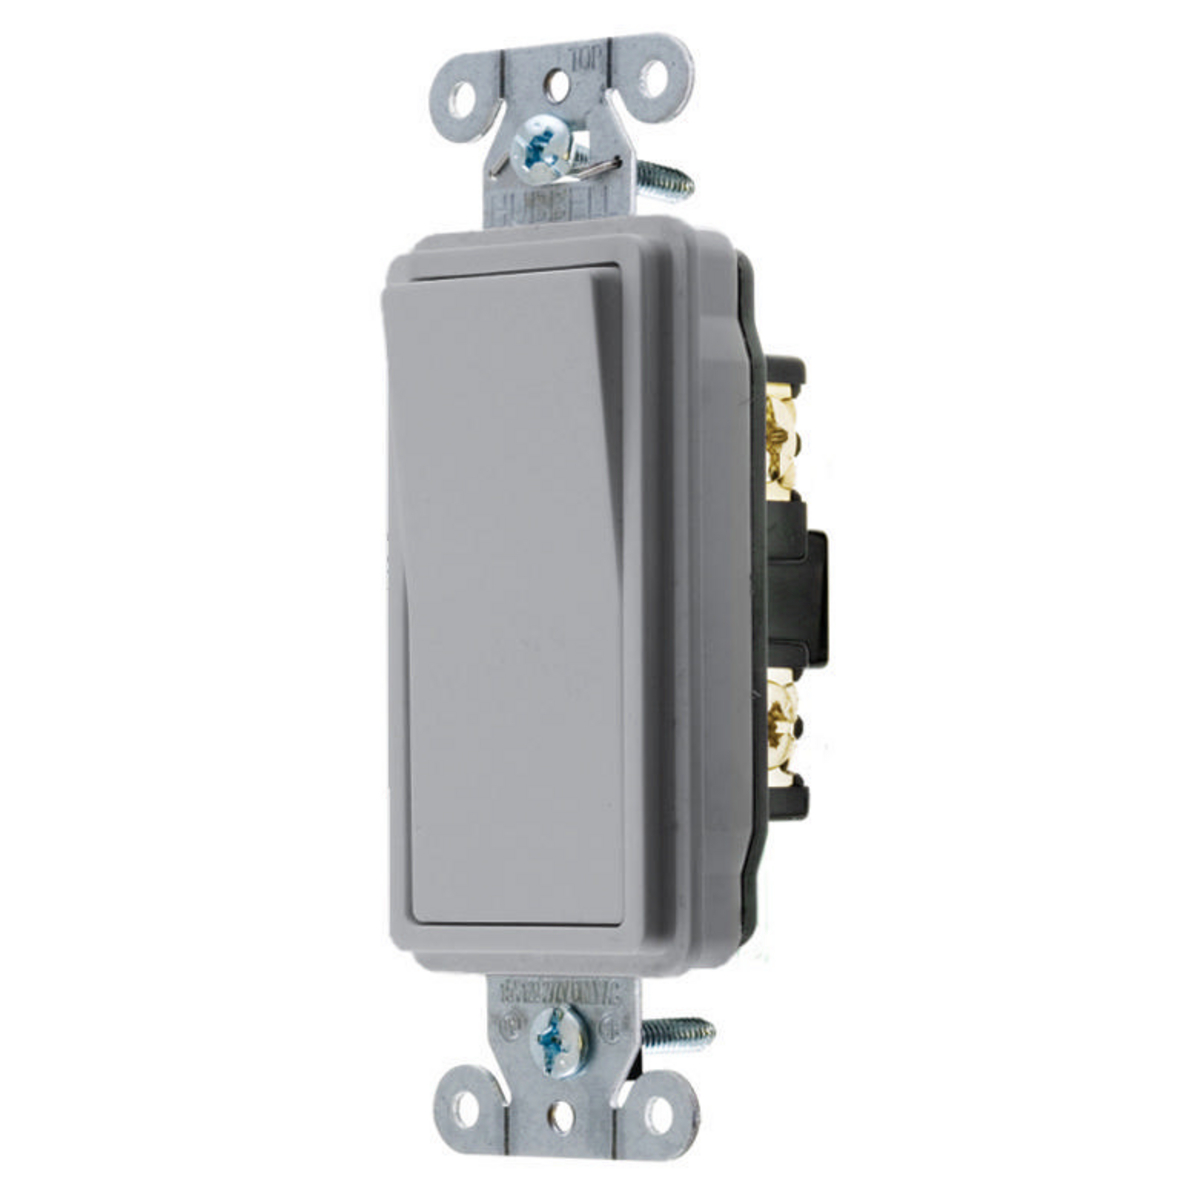 Hubbell DS420GY SWITCH, DECO SER, 4W, 20A 120/277V, GY